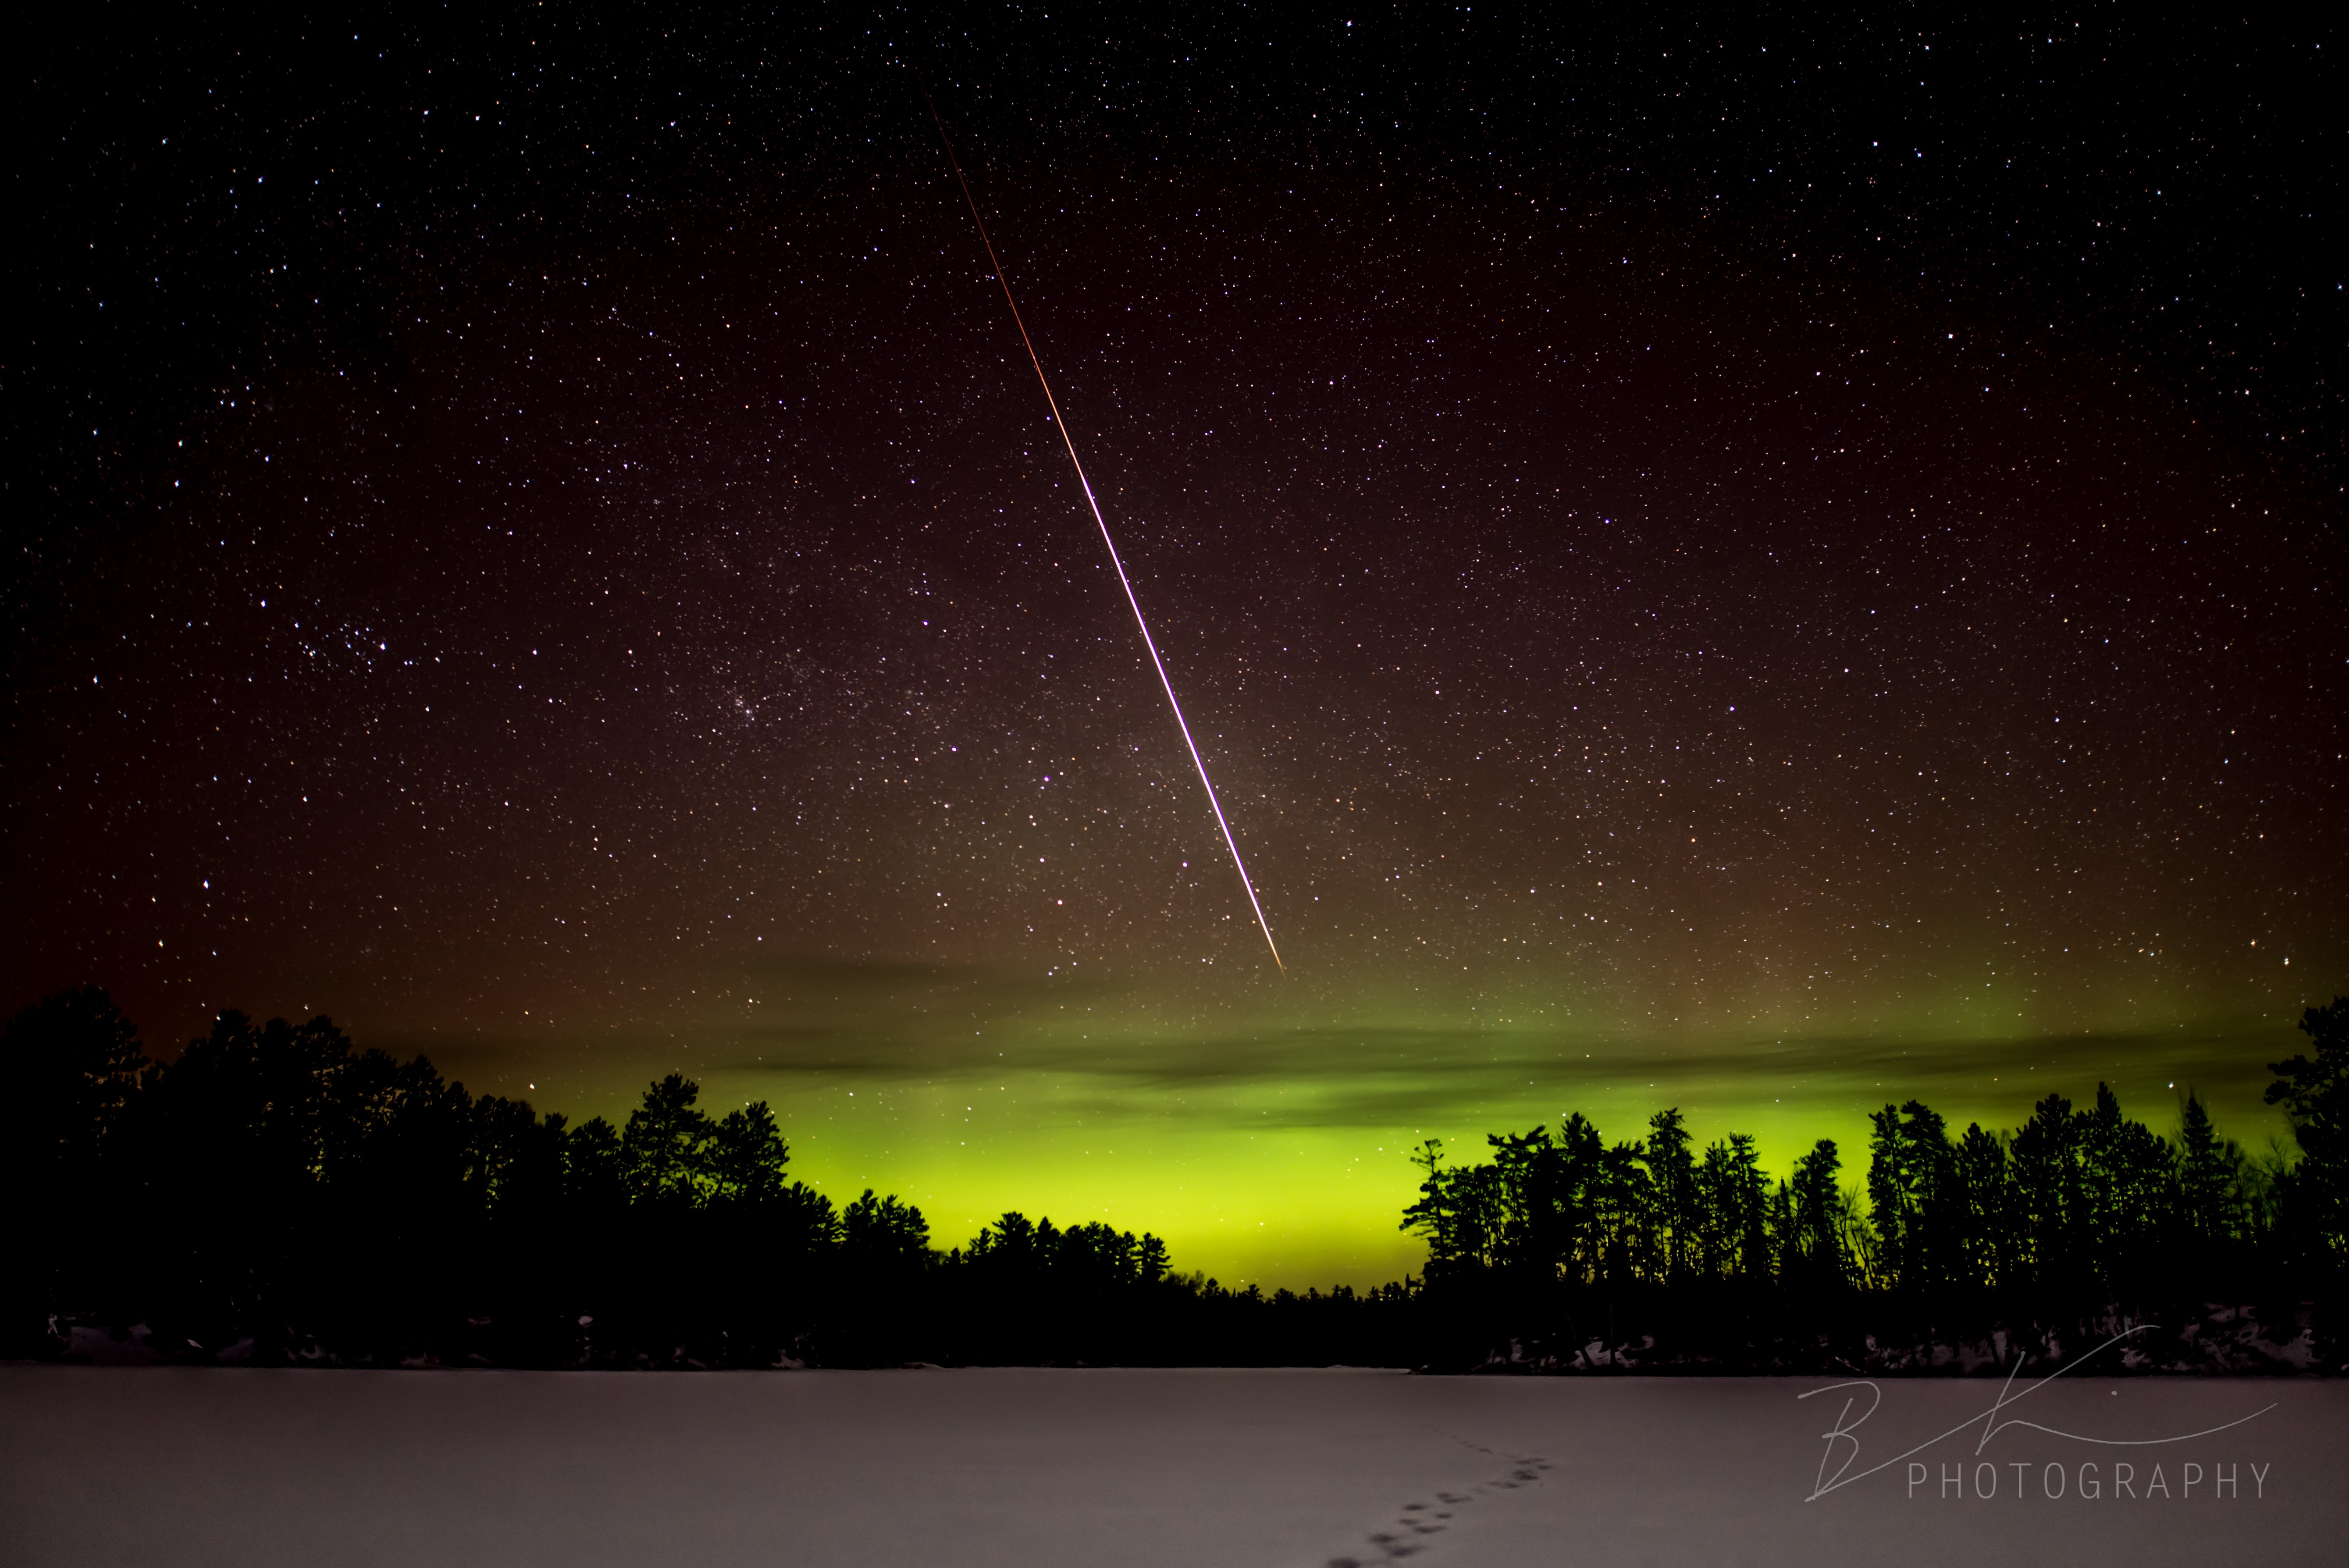 Meteor Activity Outlook for April 24-30, 2021